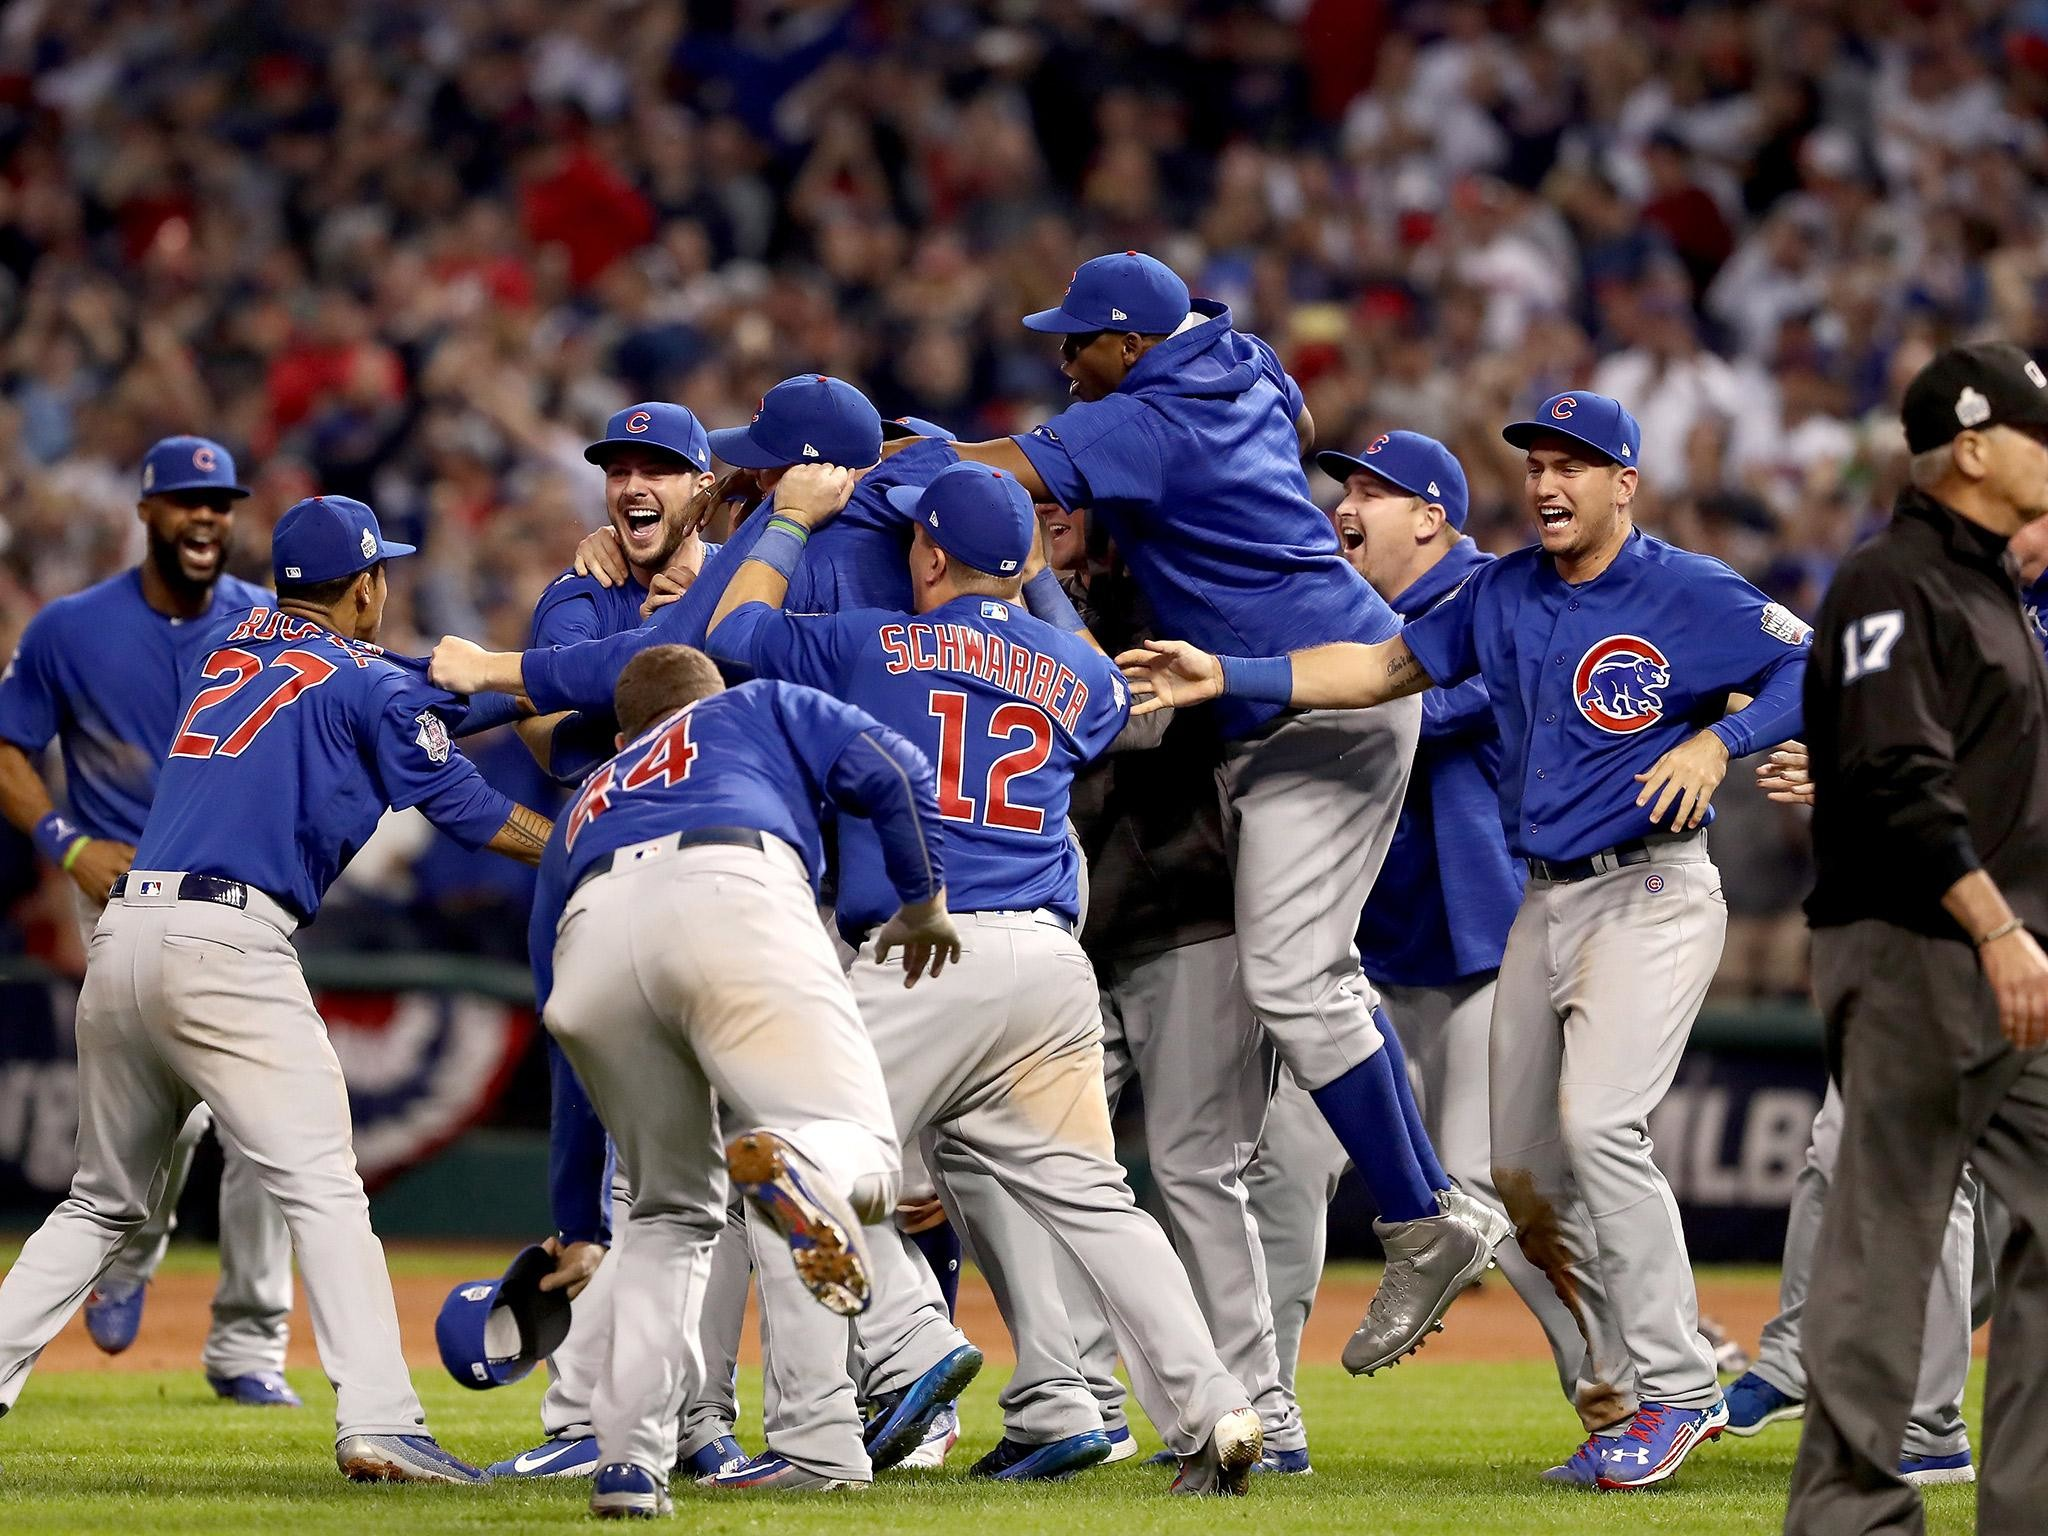 Cubs end 108-year World Series drought with victory over the Indians